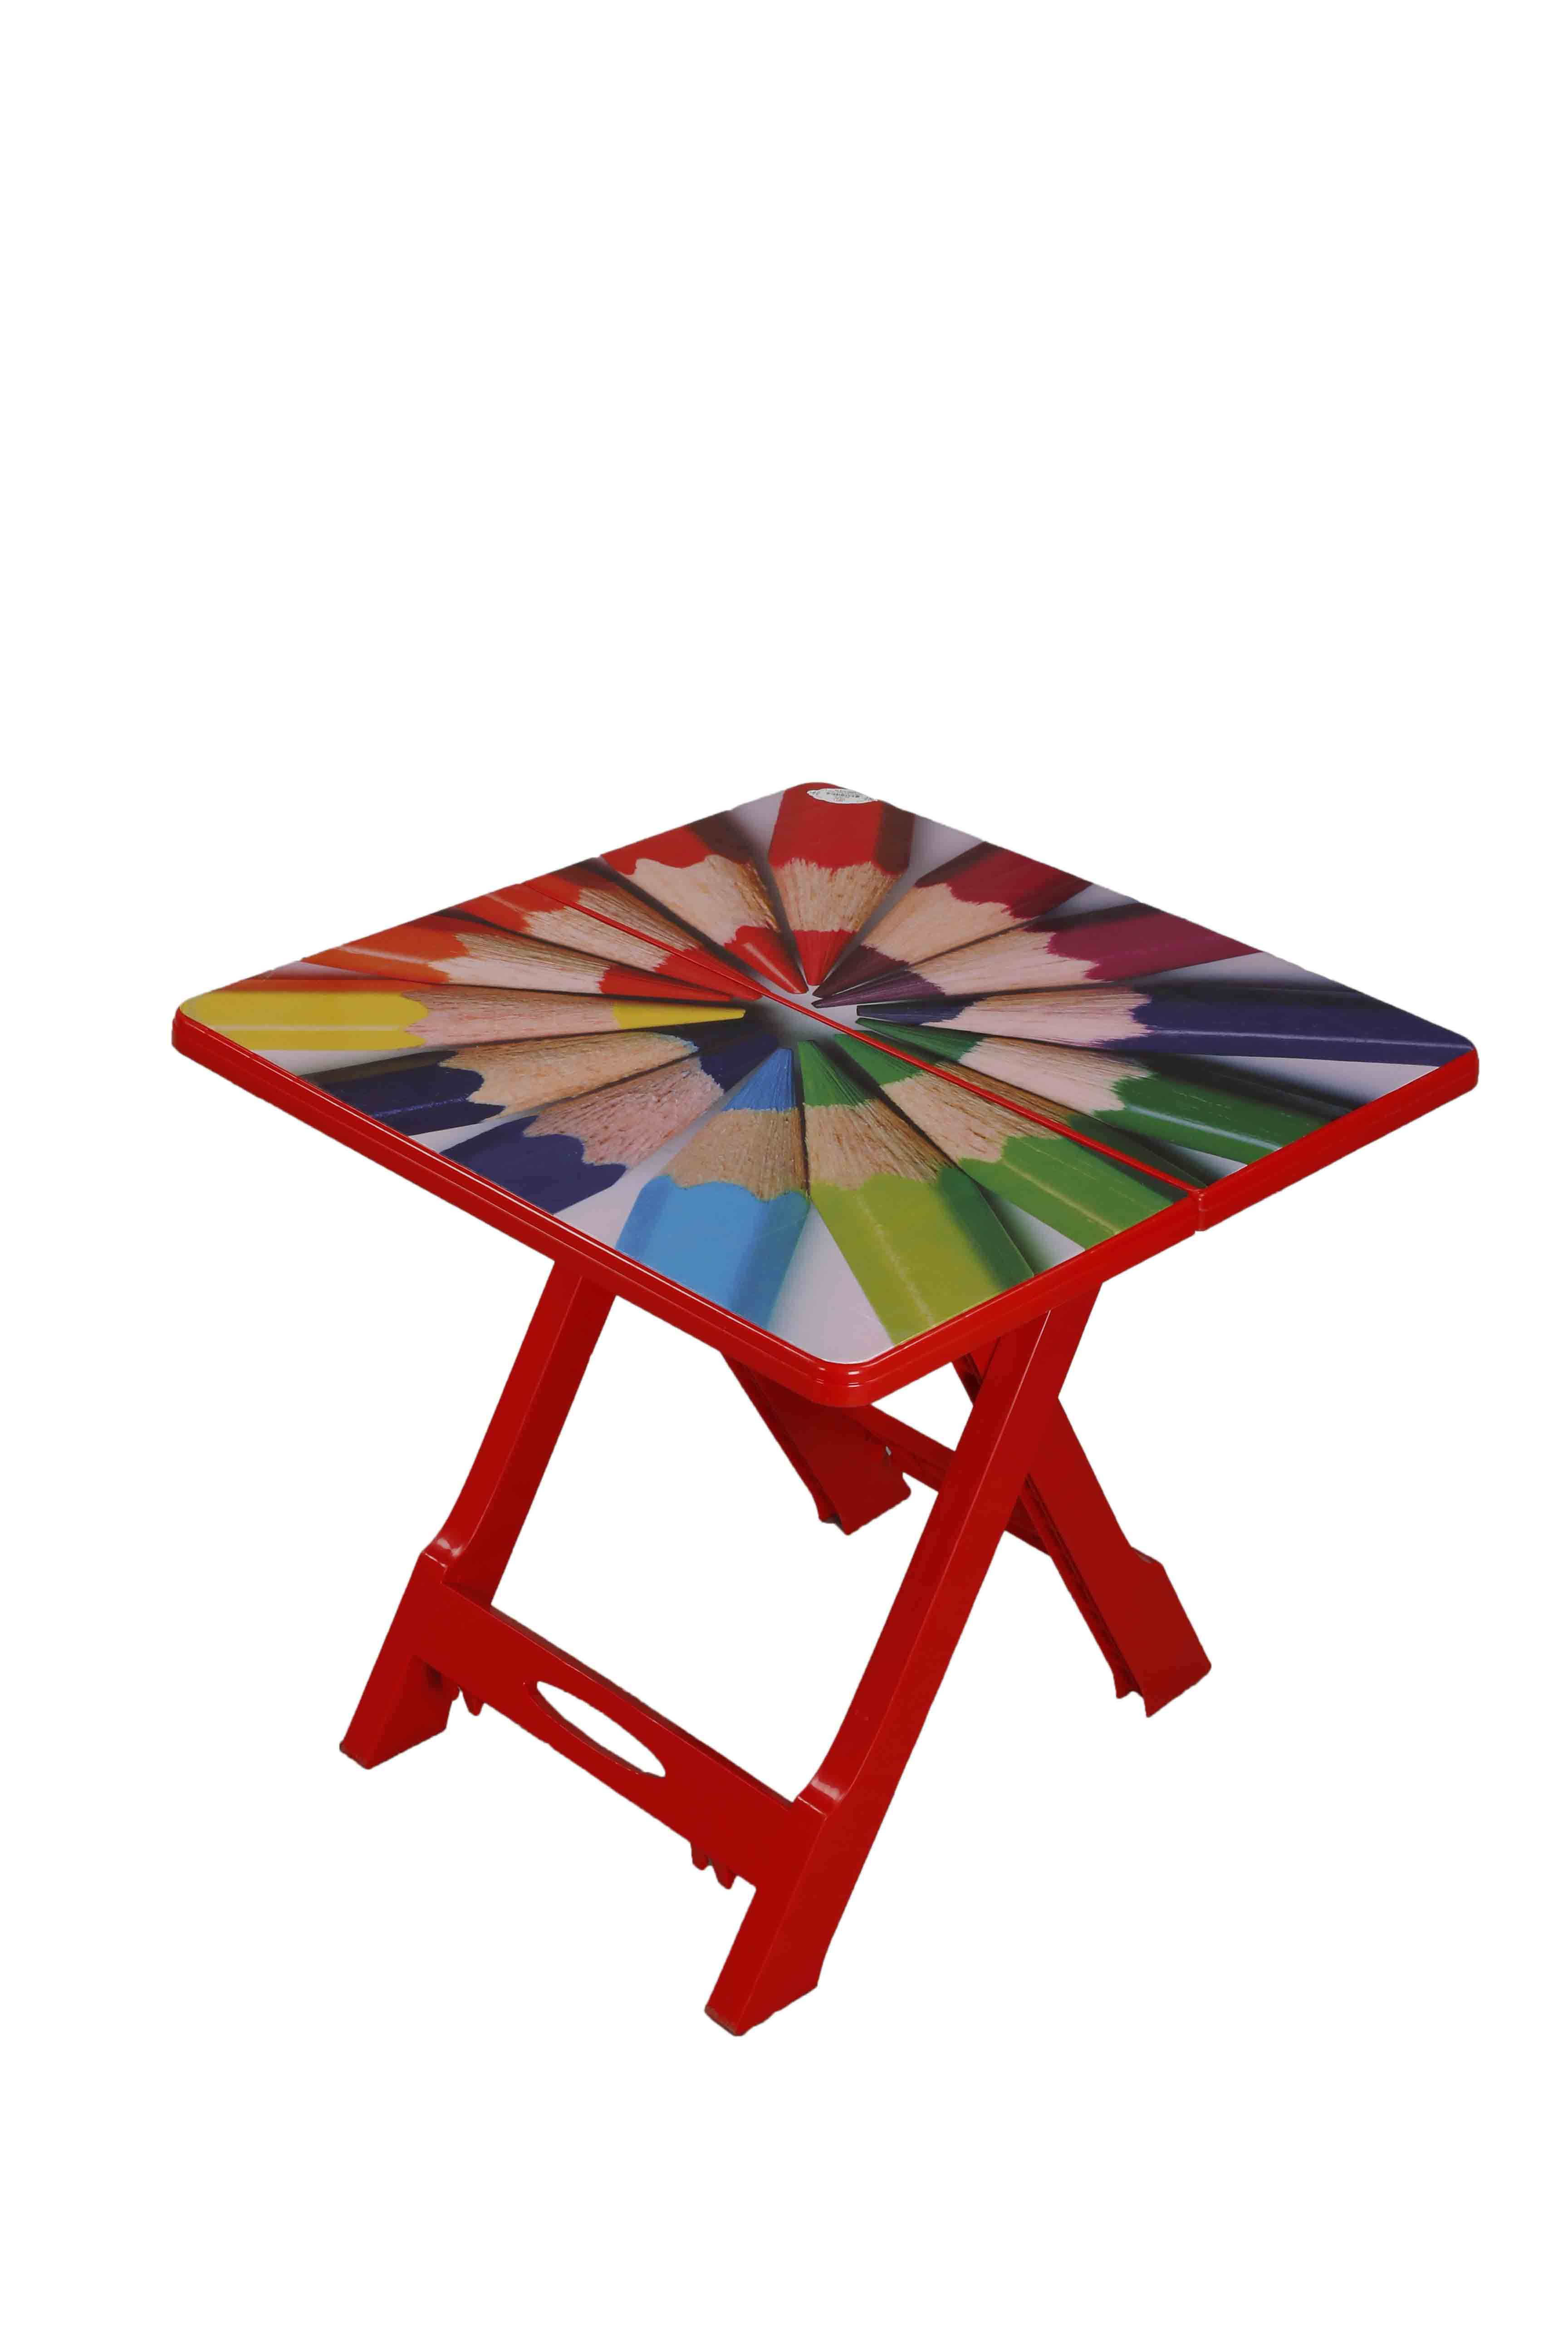 Baby Folding Table Printed Pencil-Red